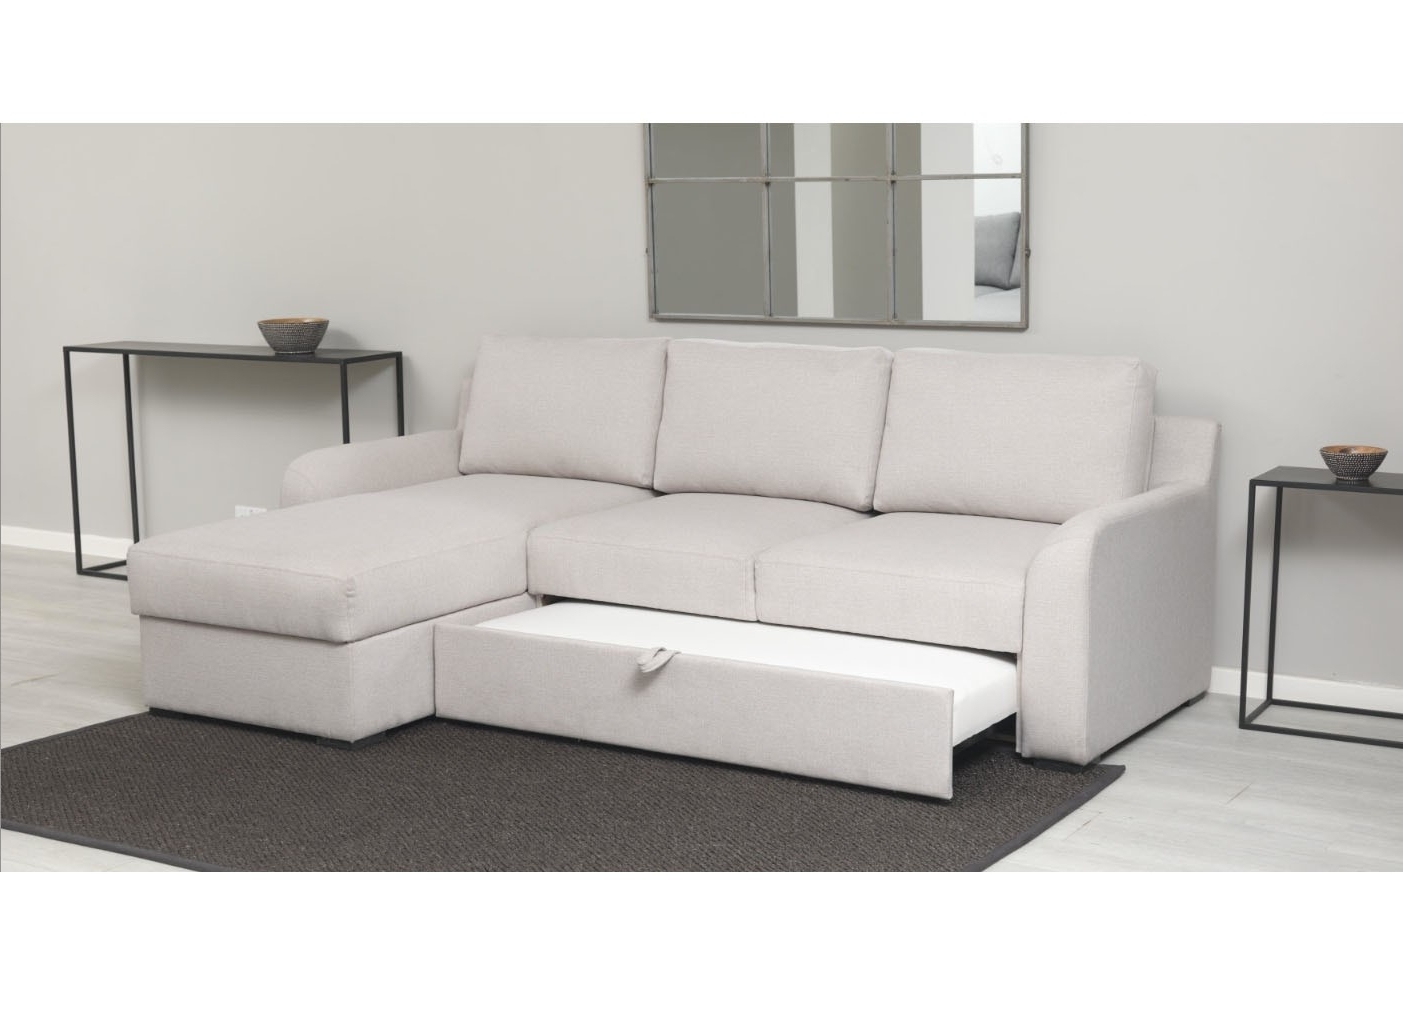 Corner Sofa Beds With Chaise For Most Current Corner Sofa Bed With Storage – Mforum (View 3 of 15)